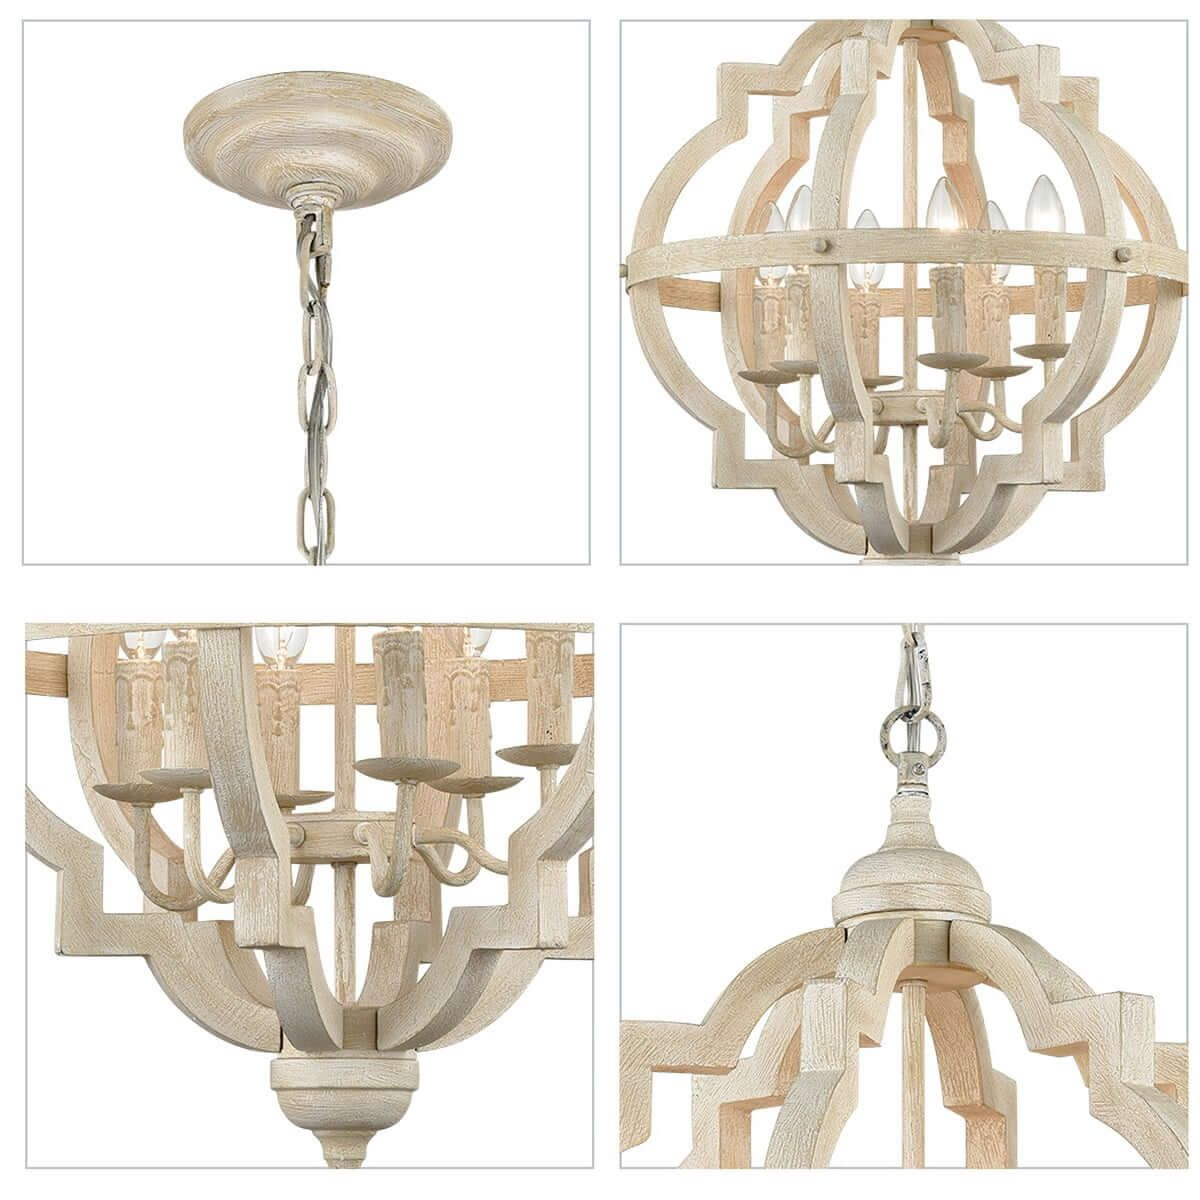 Distressed Off White Wooden Chandelier Sphere 6 Light In 2021 Wooden Chandelier Wood Pendant Chandelier Candle Chandelier